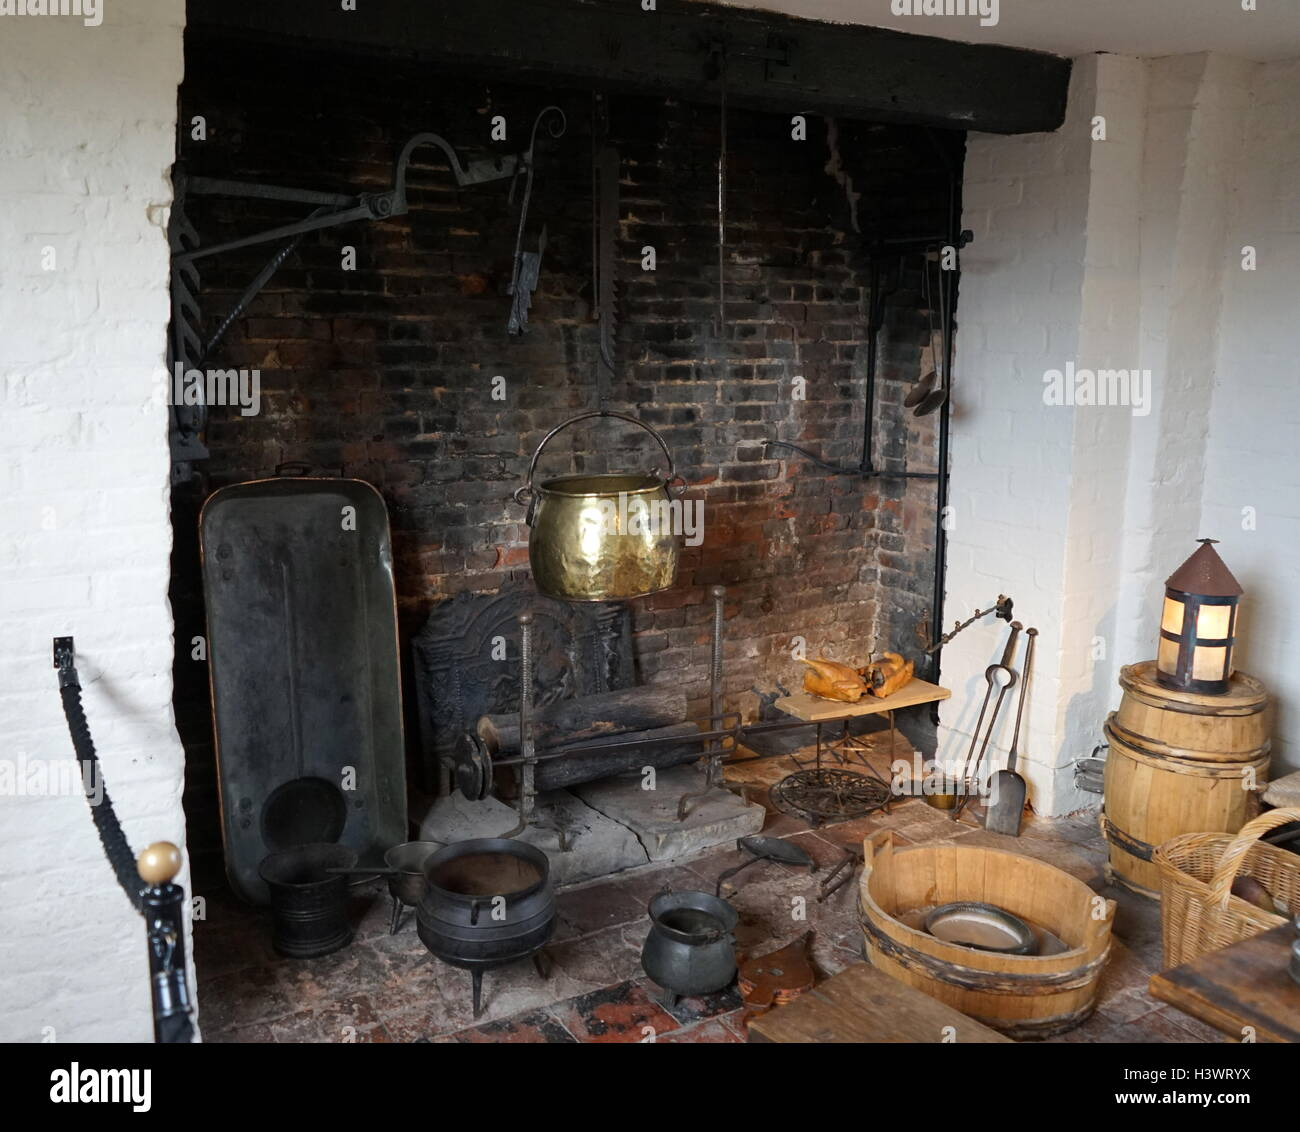 elizabethan kitchen with fireplace and pots stock photo royalty